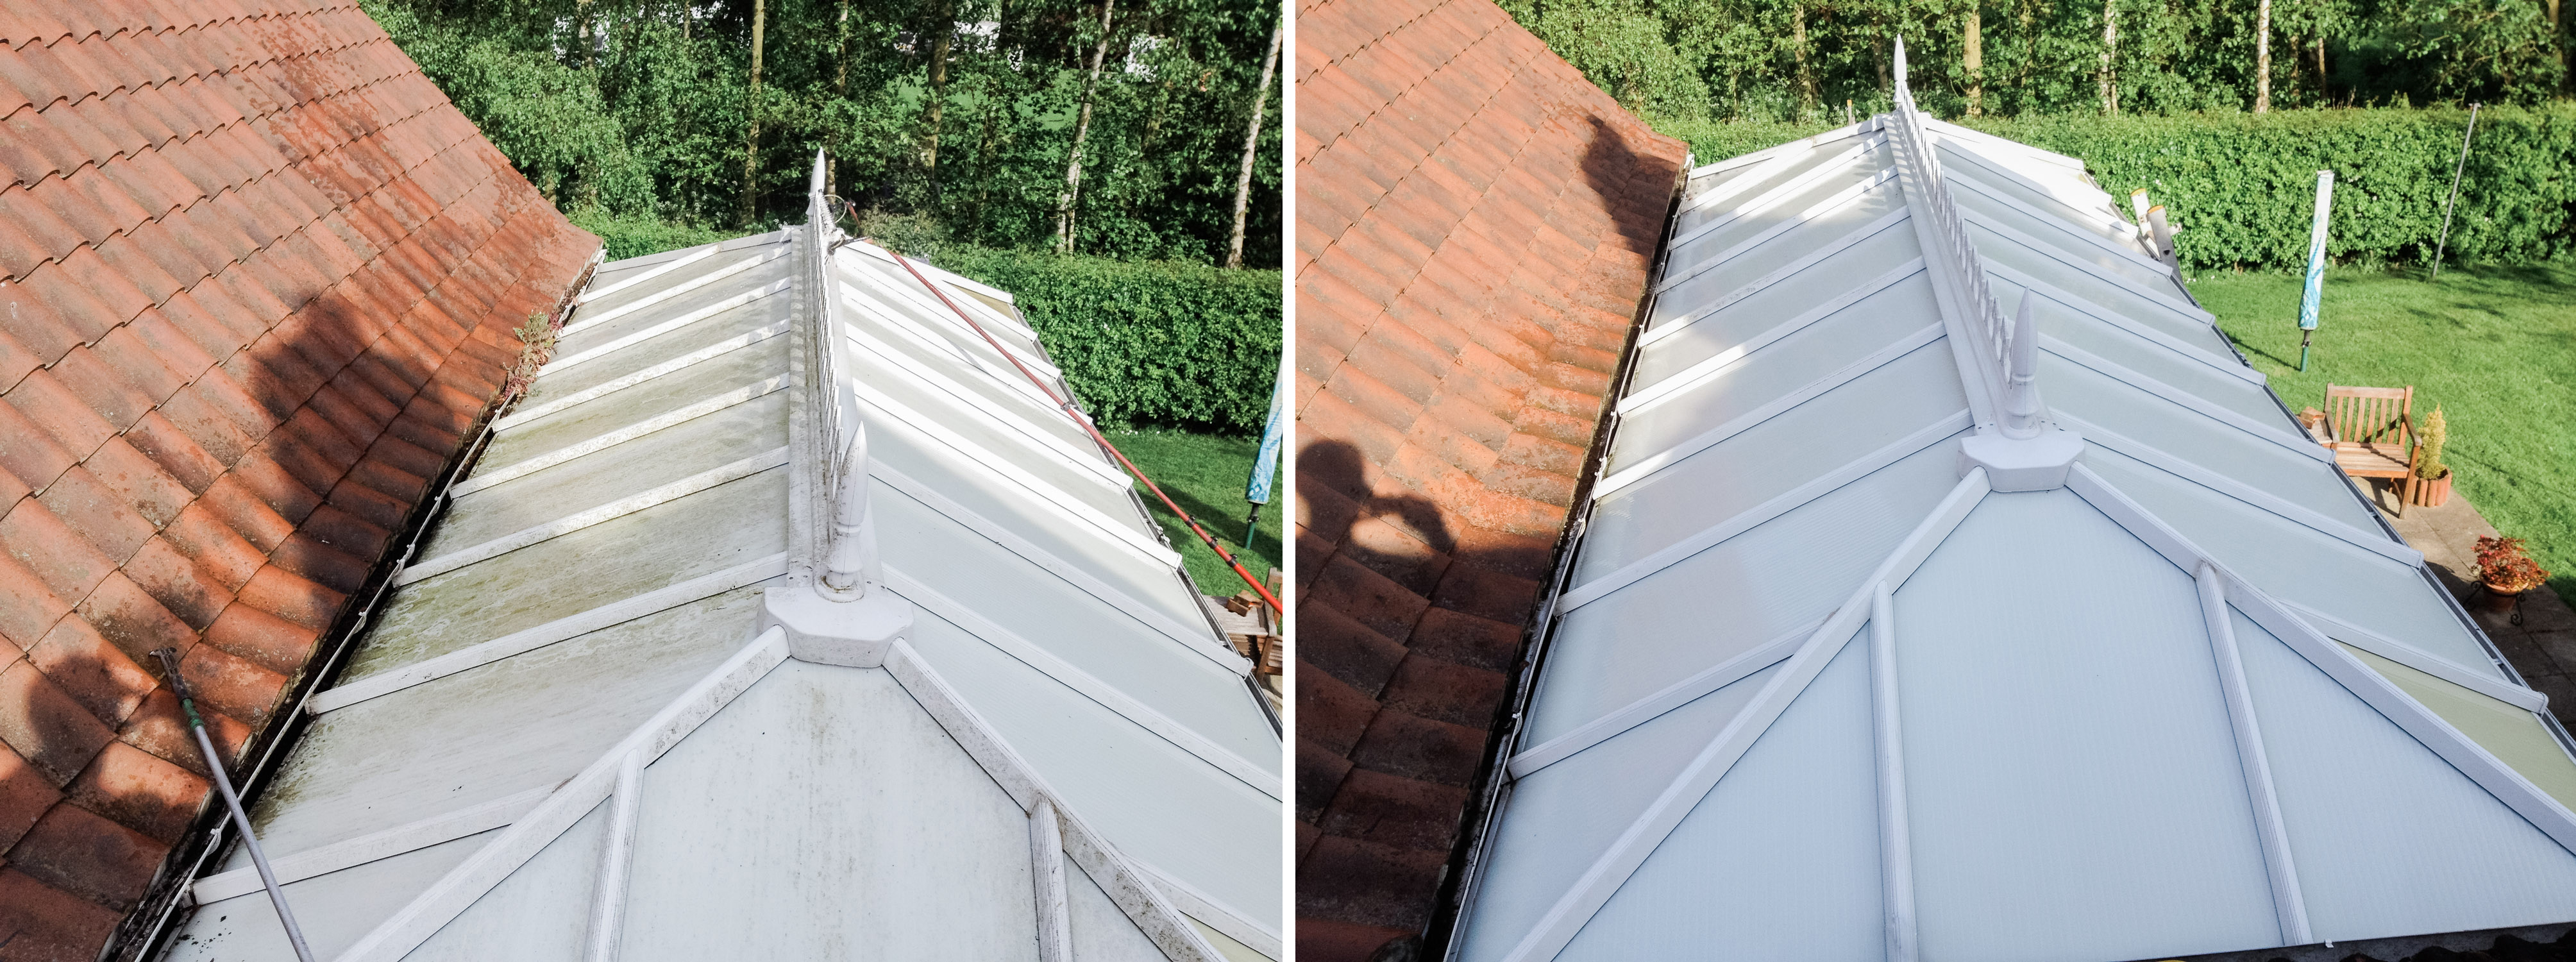 Conservatory Roof Cleaning Services In Yorkshire Facias